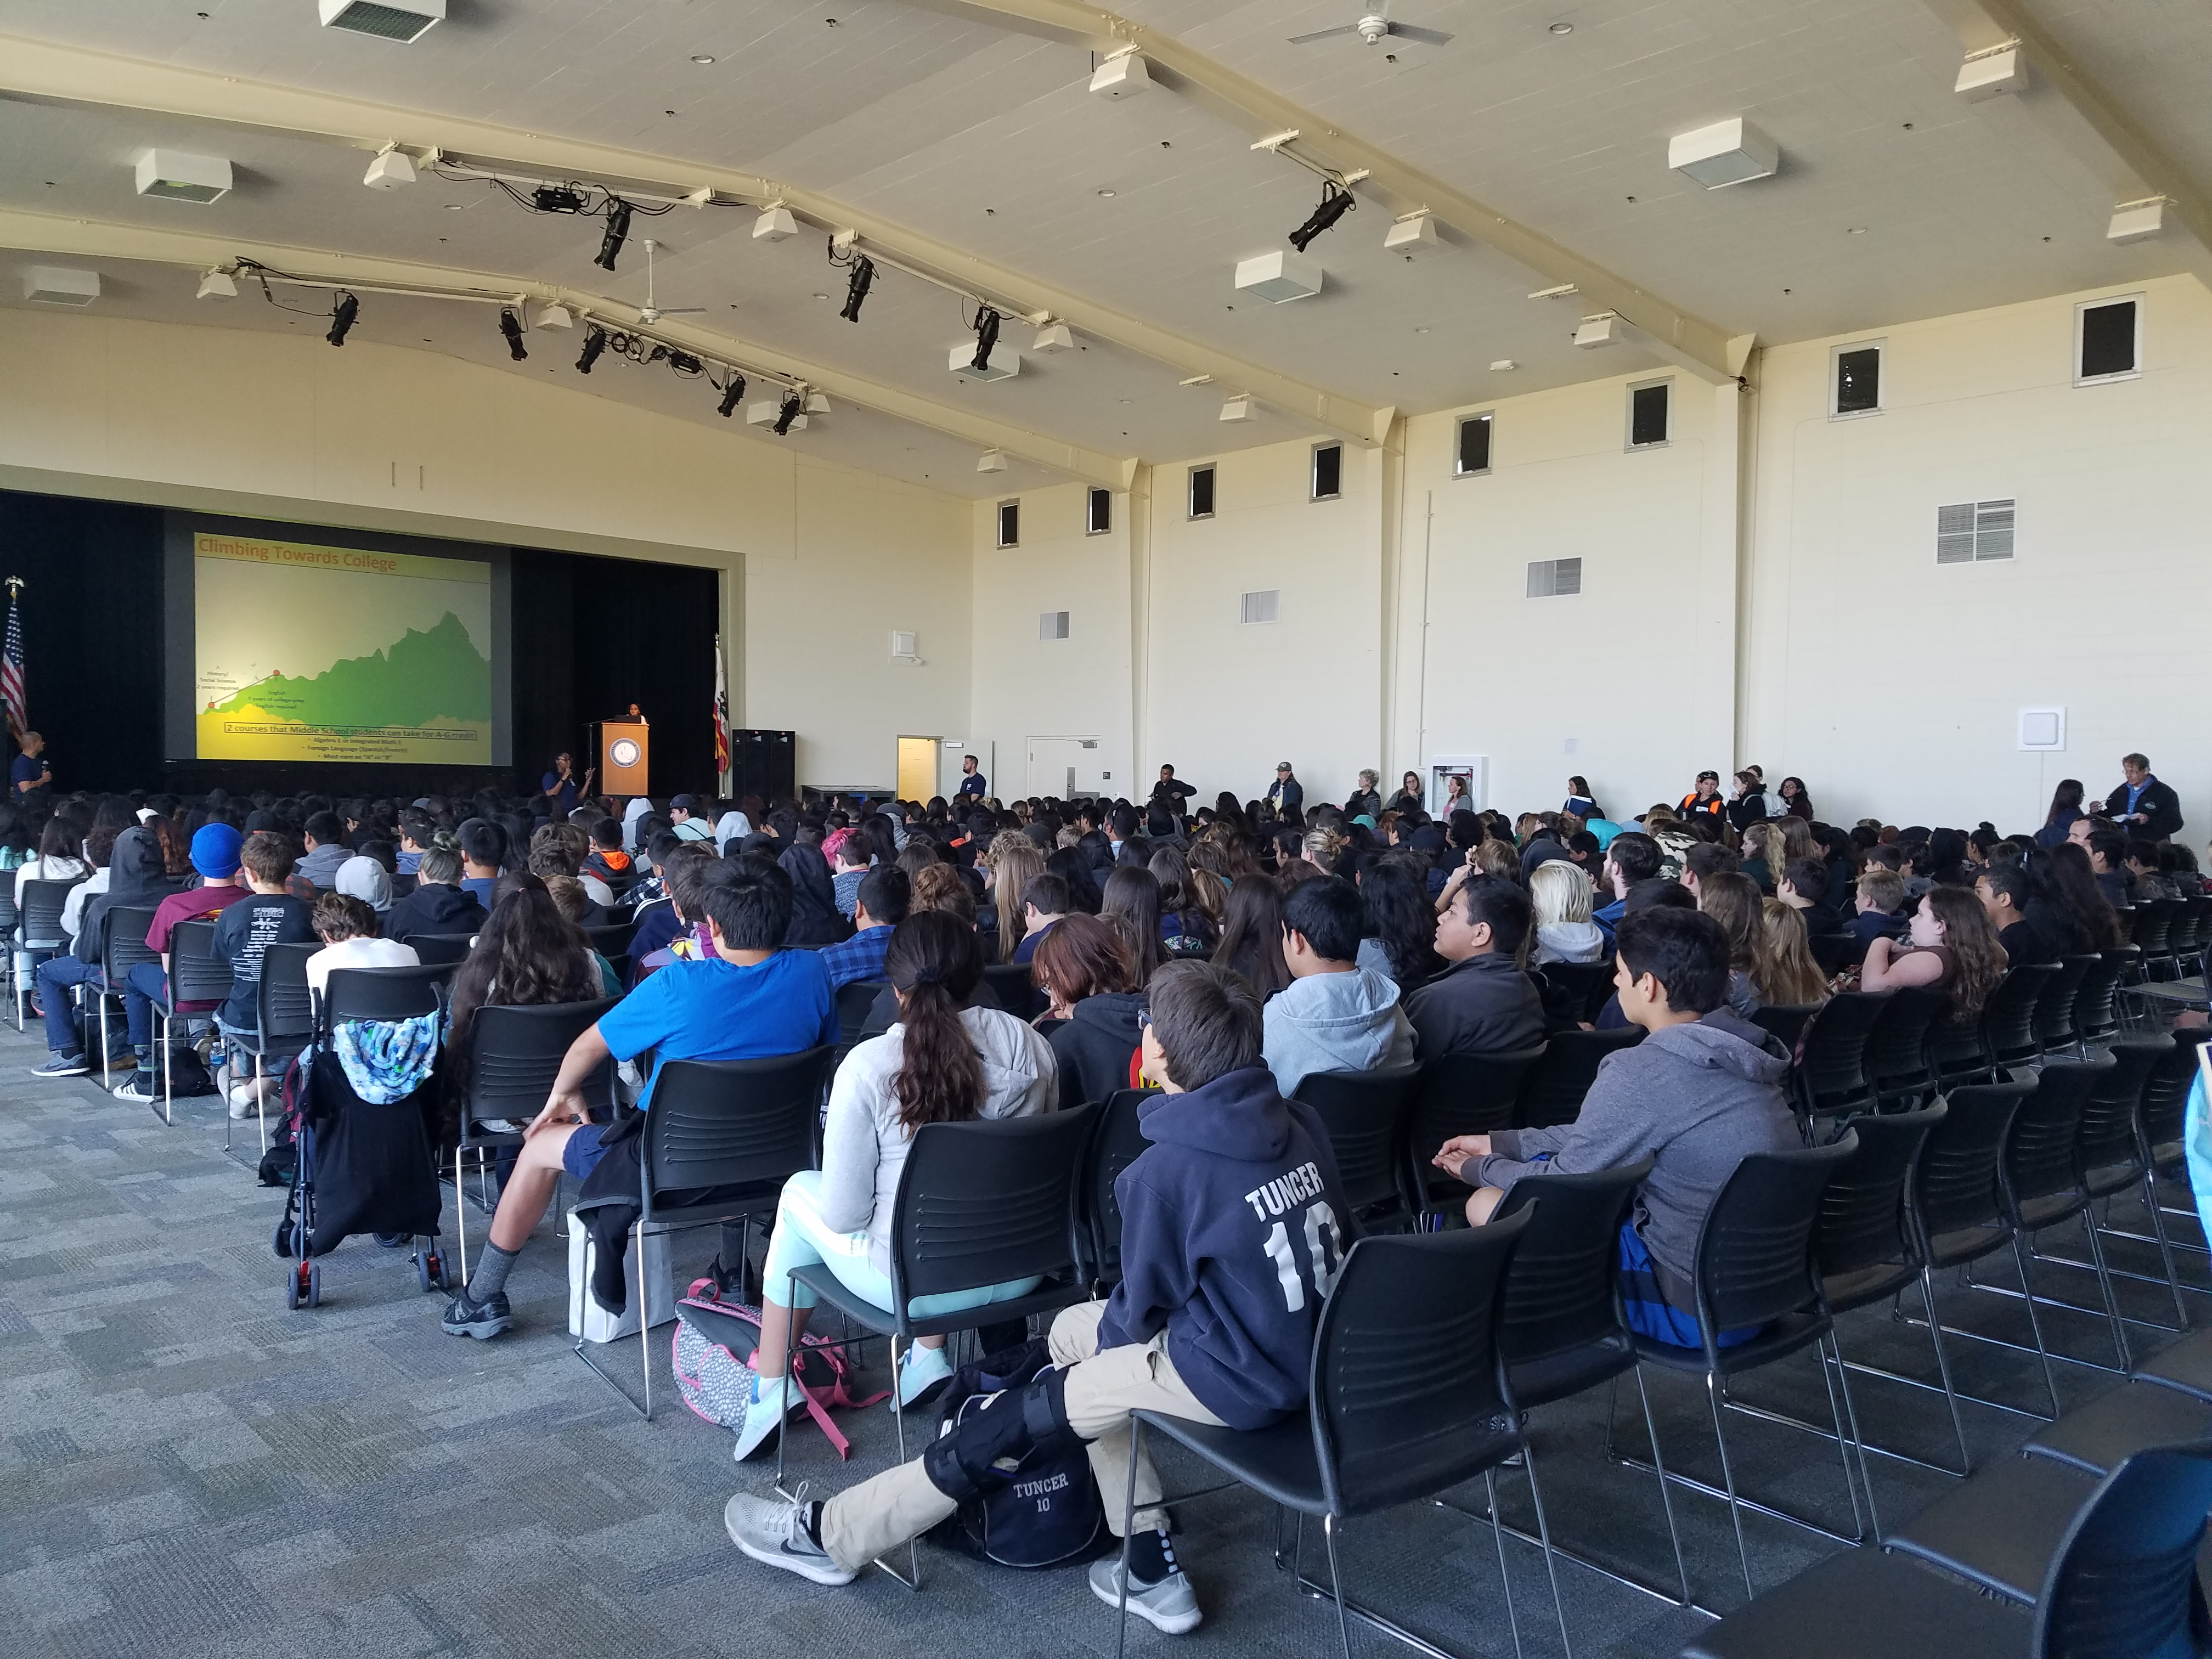 The yearly summit averages 1,400 seventh-graders in participation at CSUMB.